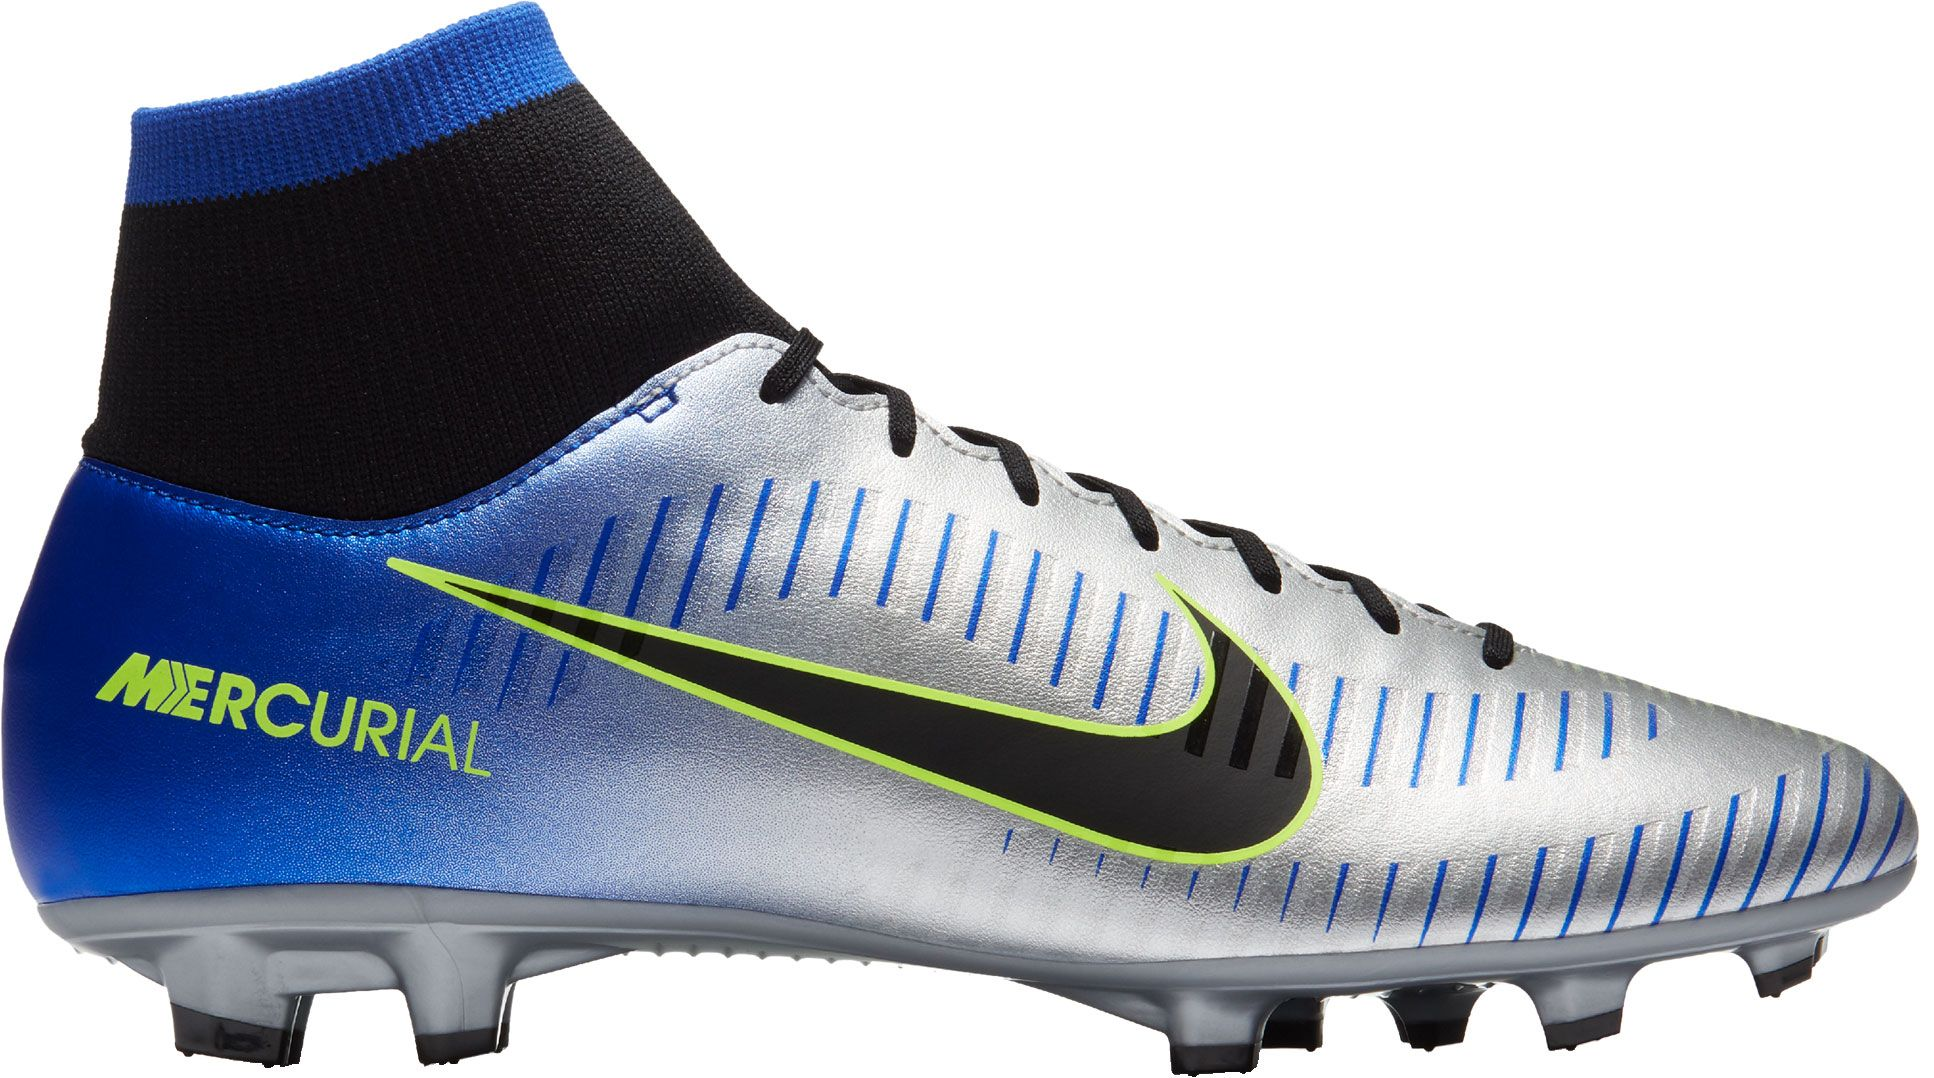 Product Image · Nike Mercurial Victory VI Dynamic Fit NJR FG Soccer Cleats  · Silver/Blue